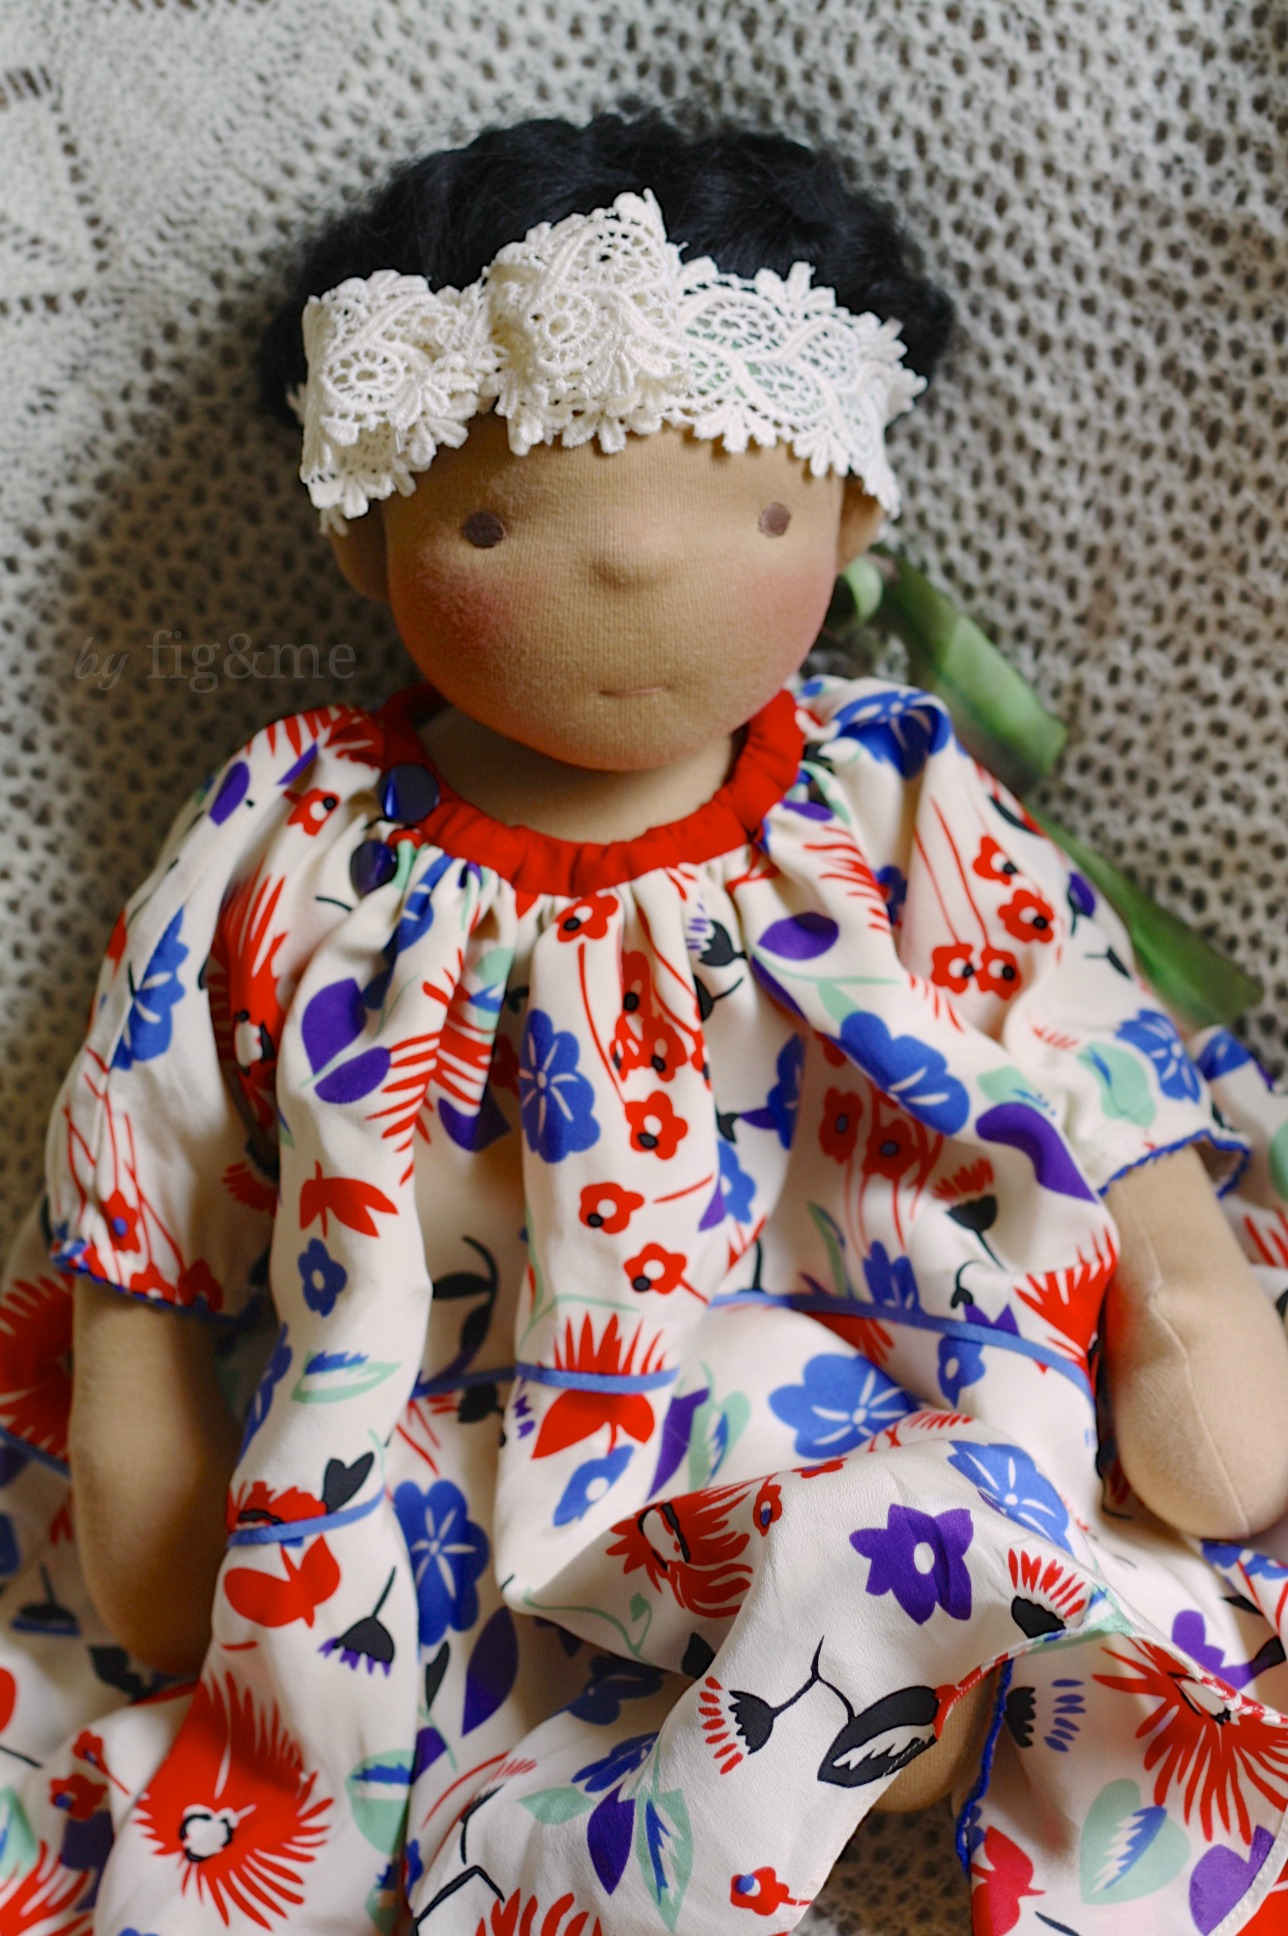 Frida in her silk dress with her lace headband, by Fig and me.